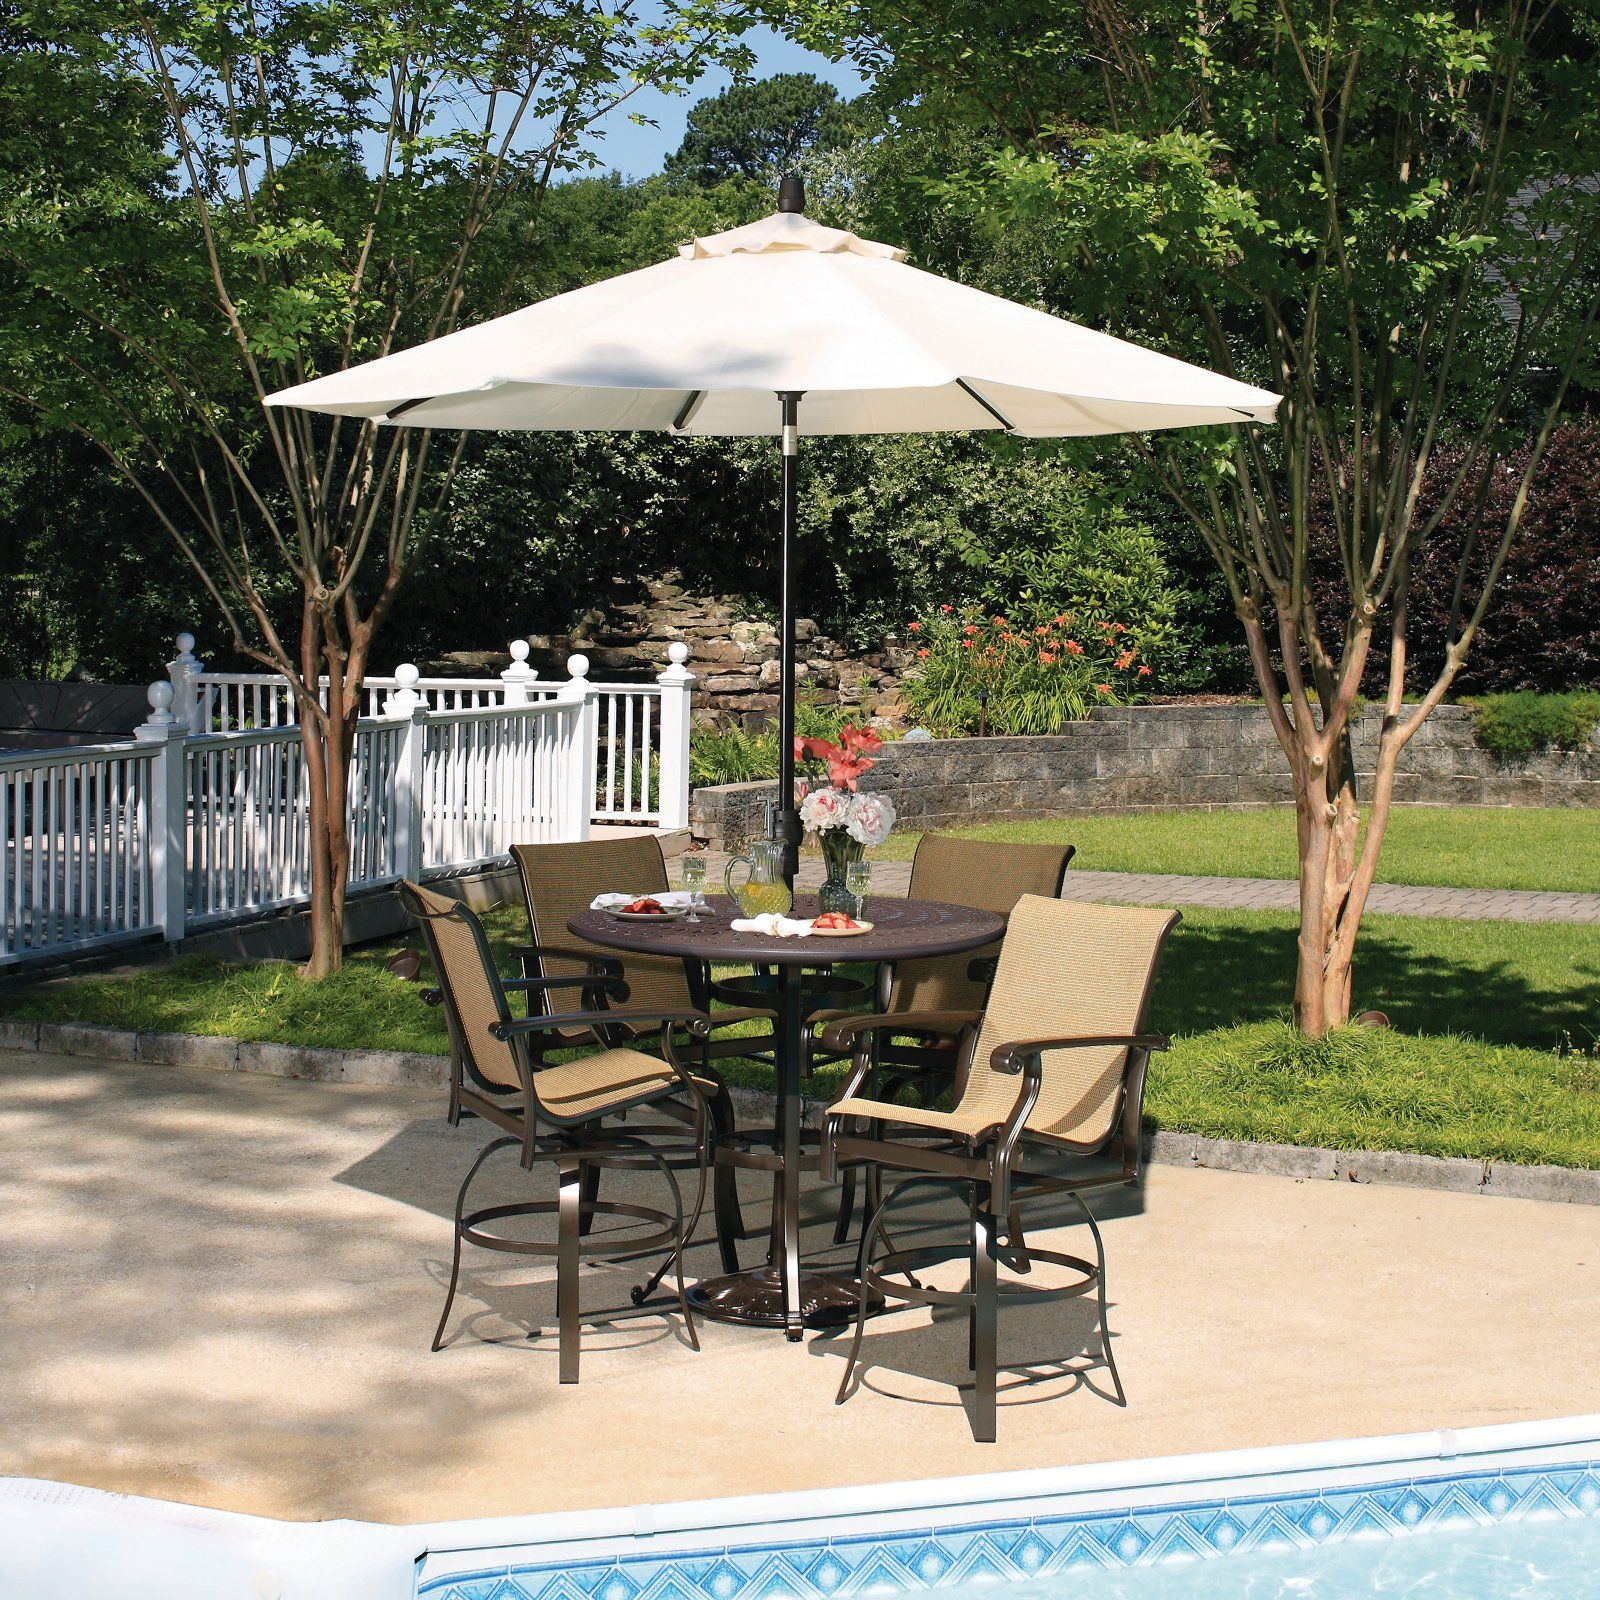 patio furniture sets bar height among white umbrella furniture design patio furniture sets. Black Bedroom Furniture Sets. Home Design Ideas